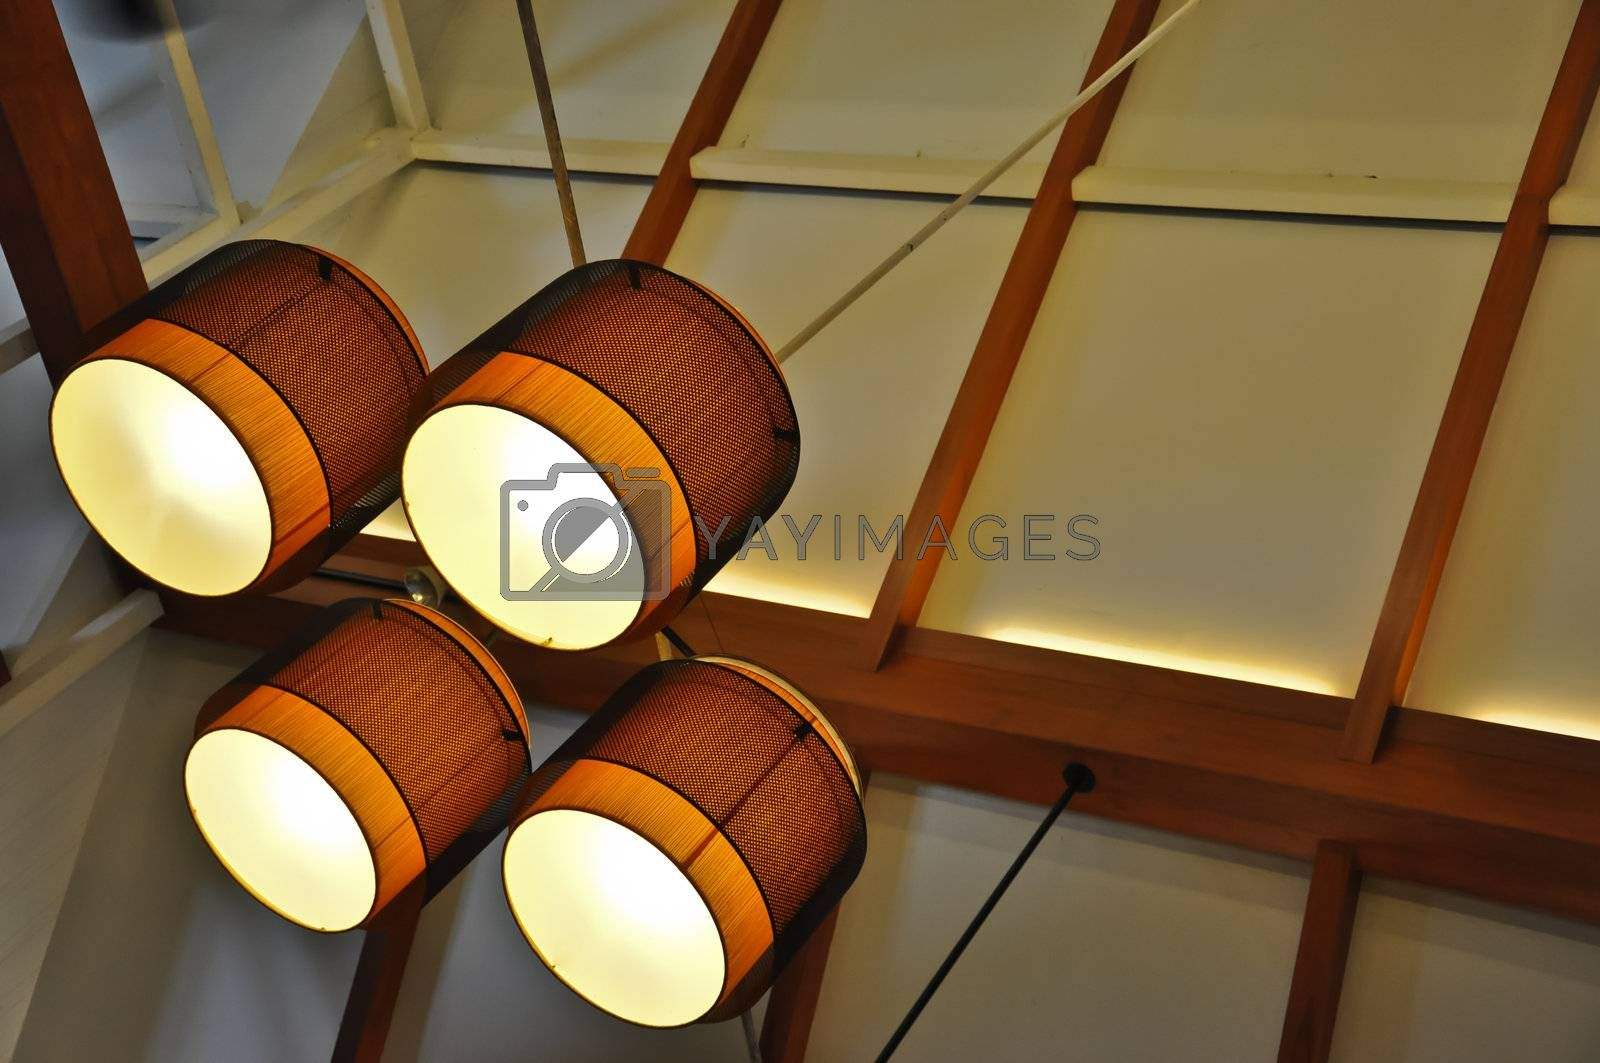 The modern chandelier on ceiling